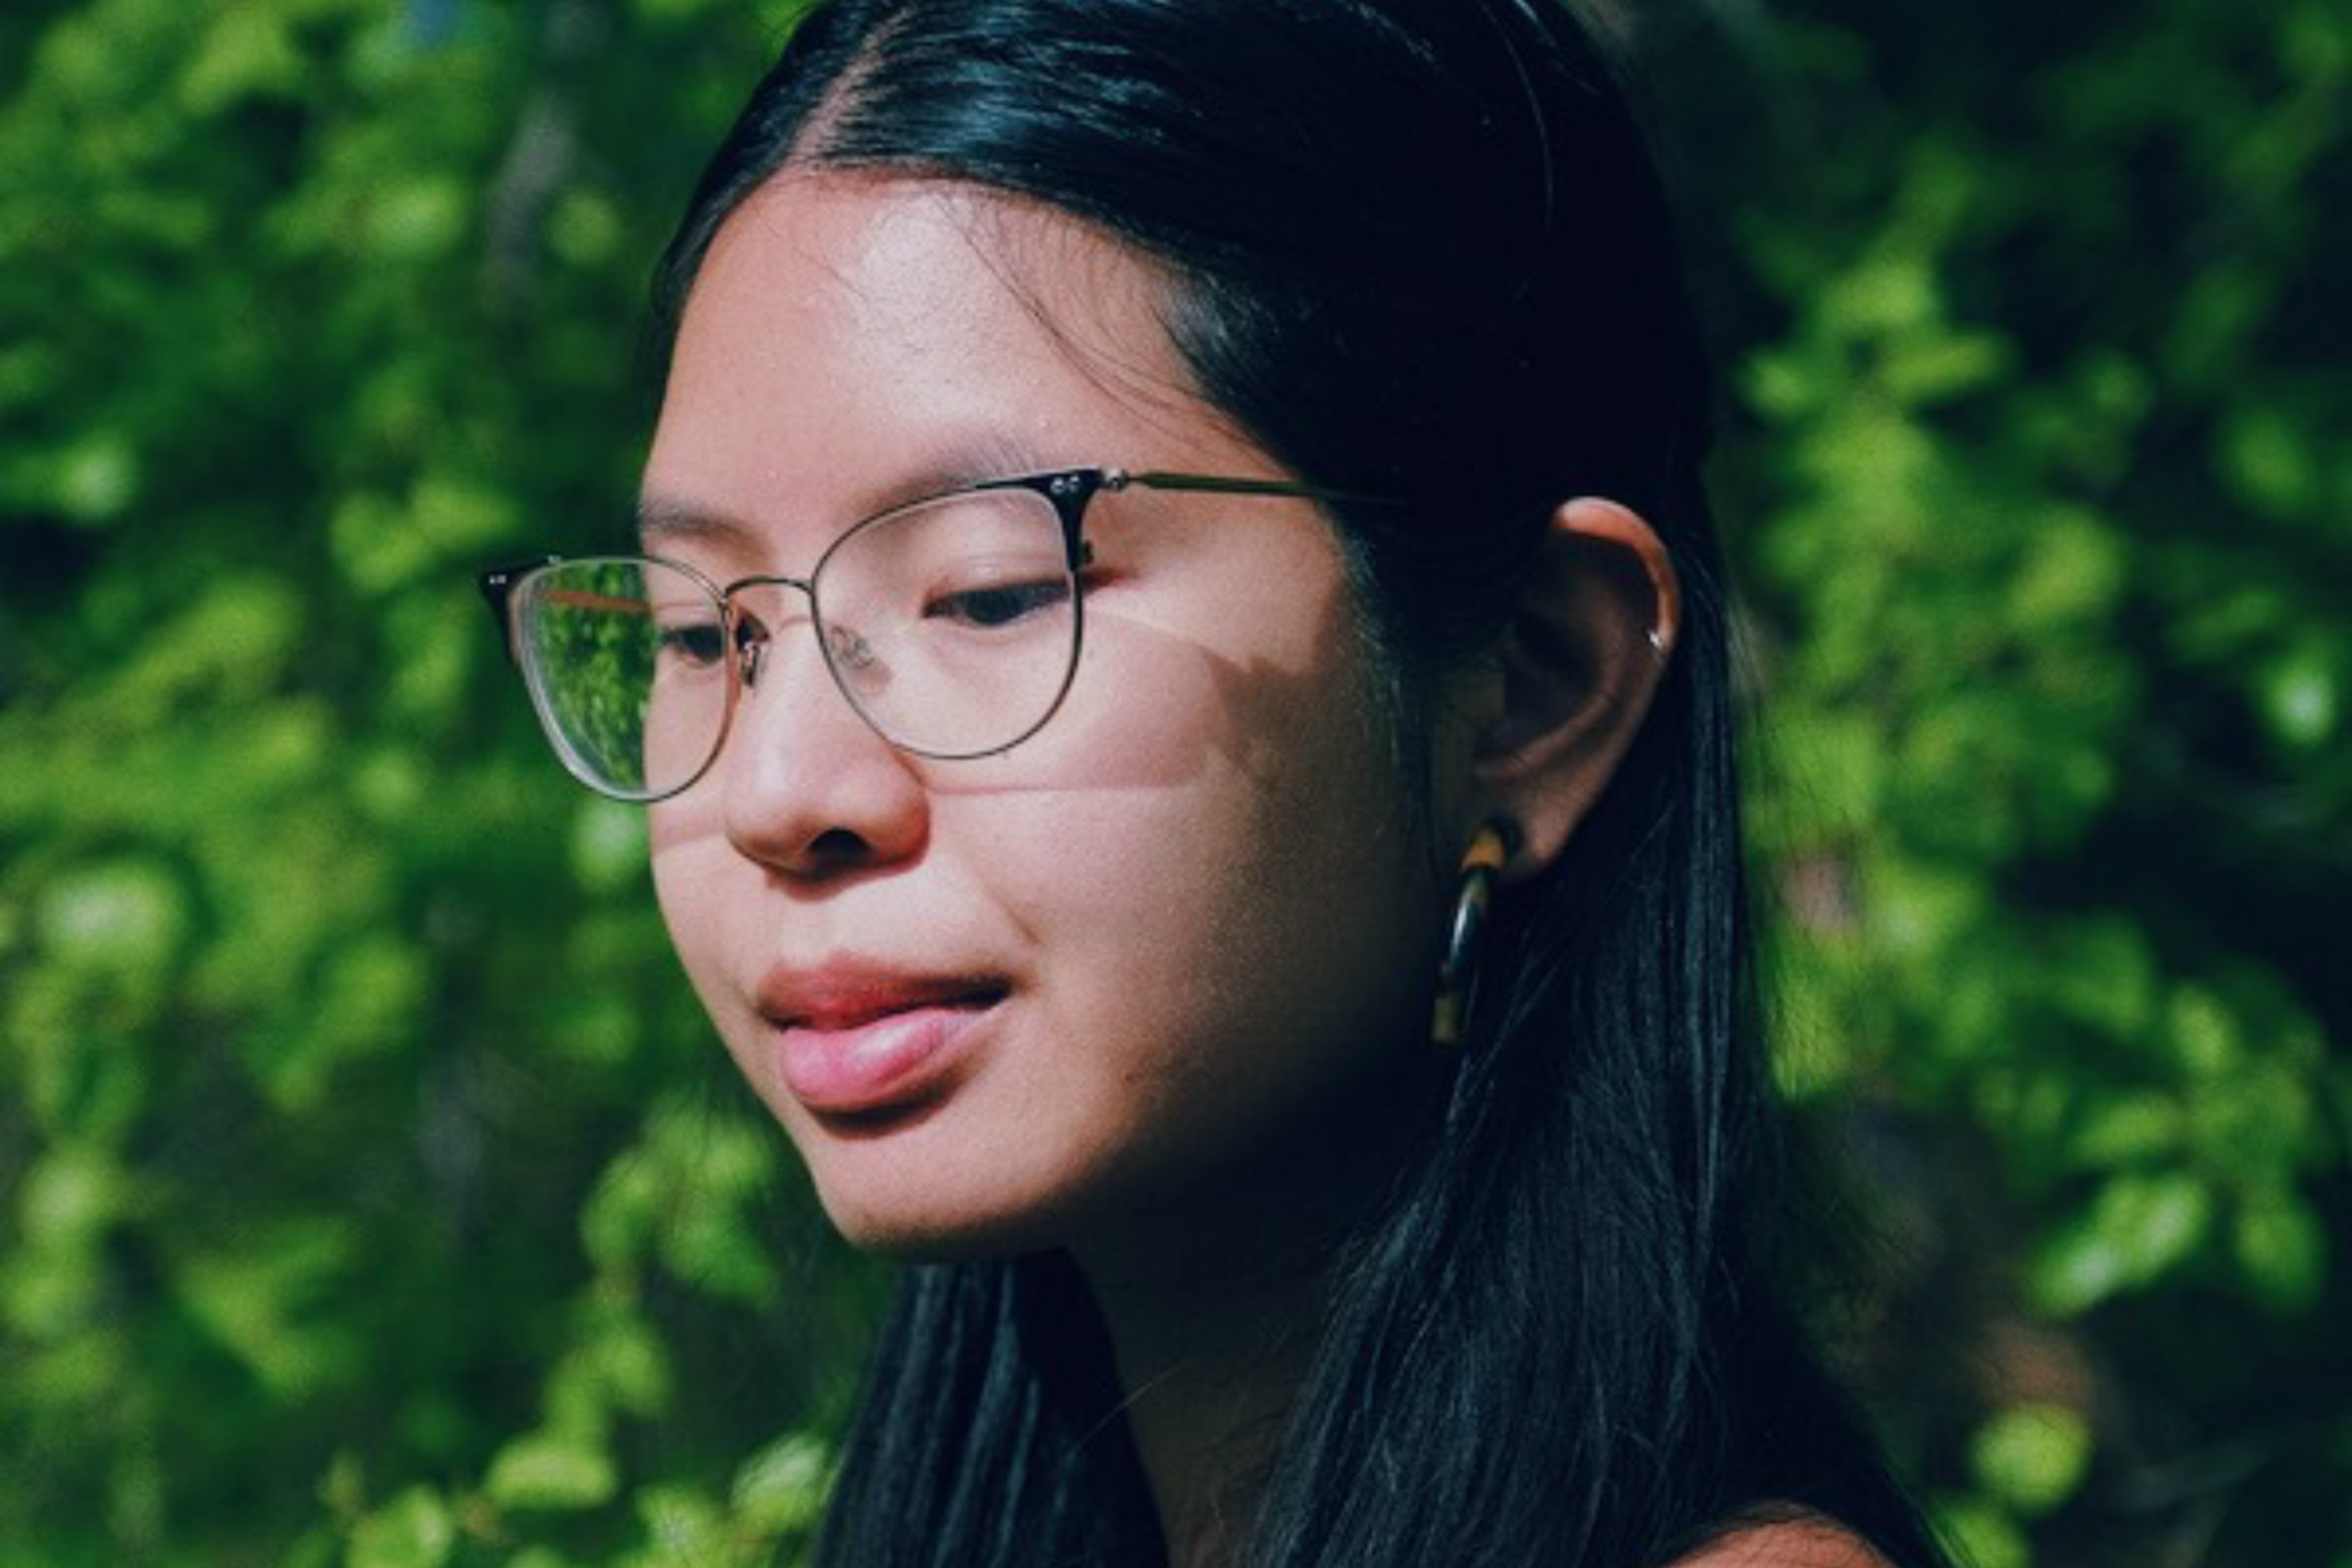 Larissa Pham, an Asian, pensive woman wears wire rim glasses in front of greenery